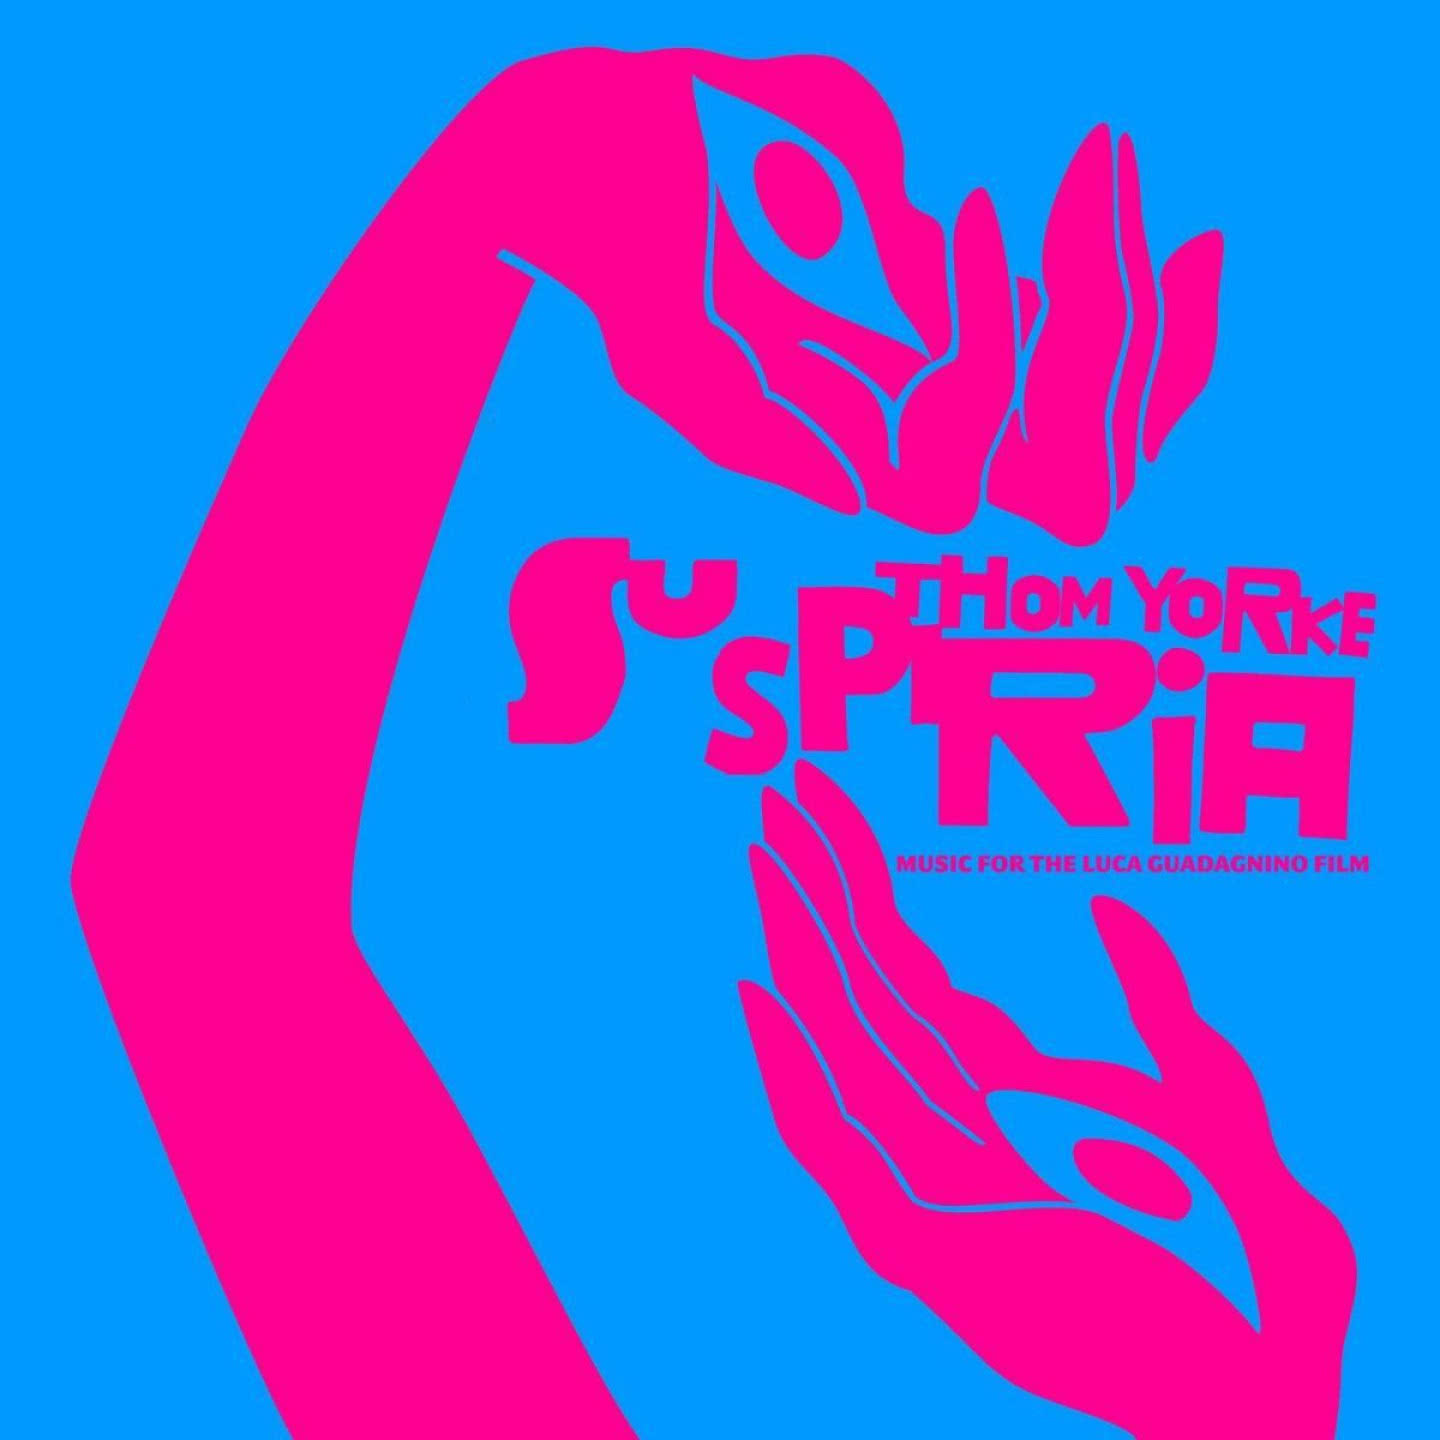 Suspiria (Music for the Luca Guadagnino Film)